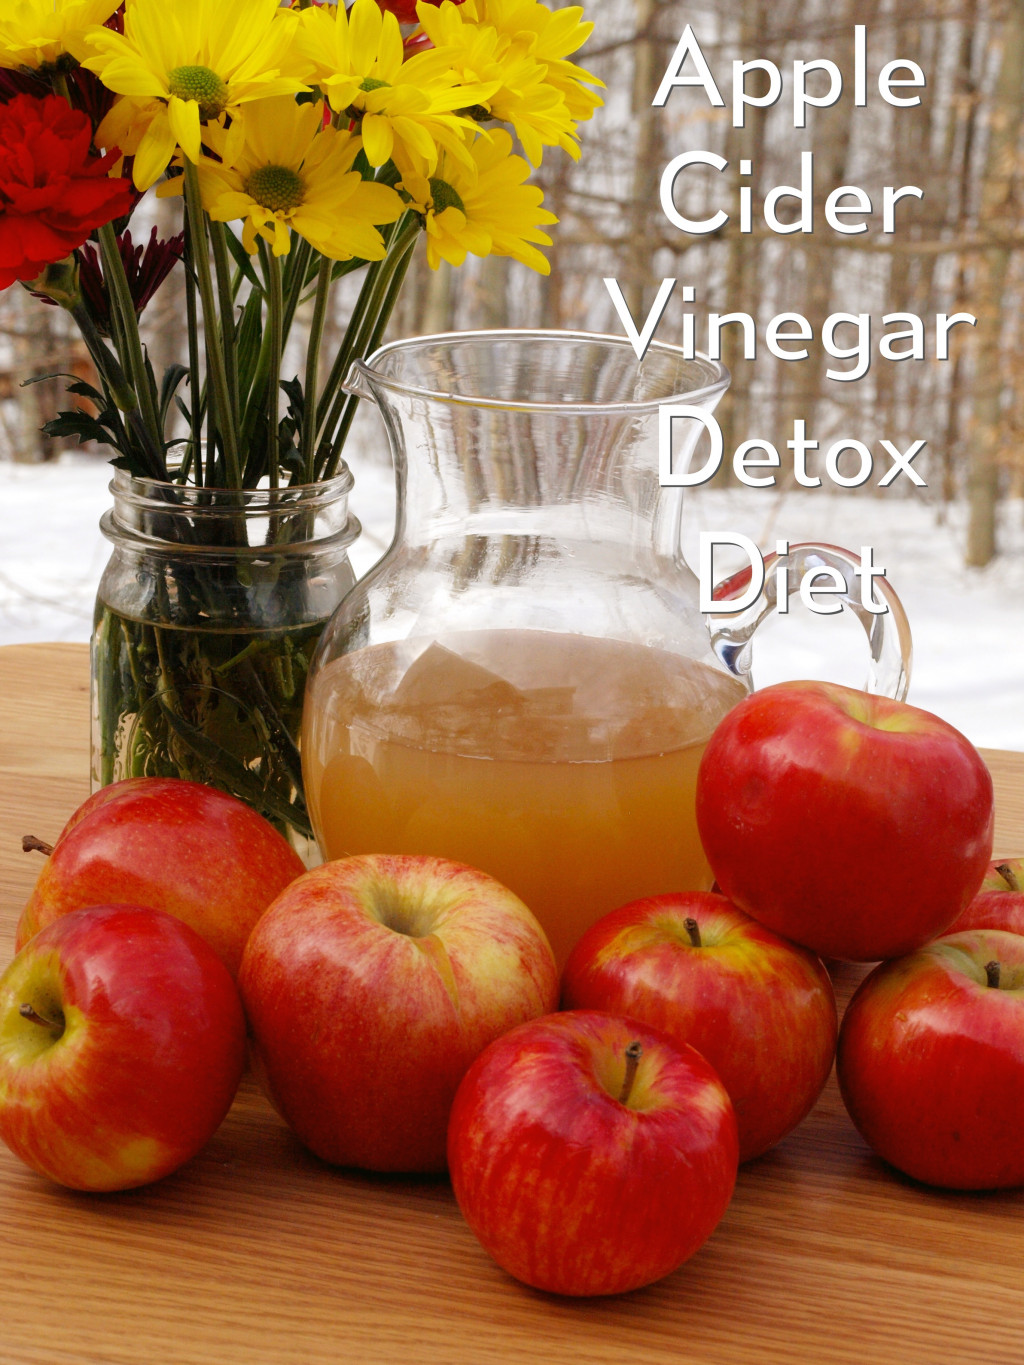 How to Detox With the Apple Cider Vinegar Diet   CalorieBee